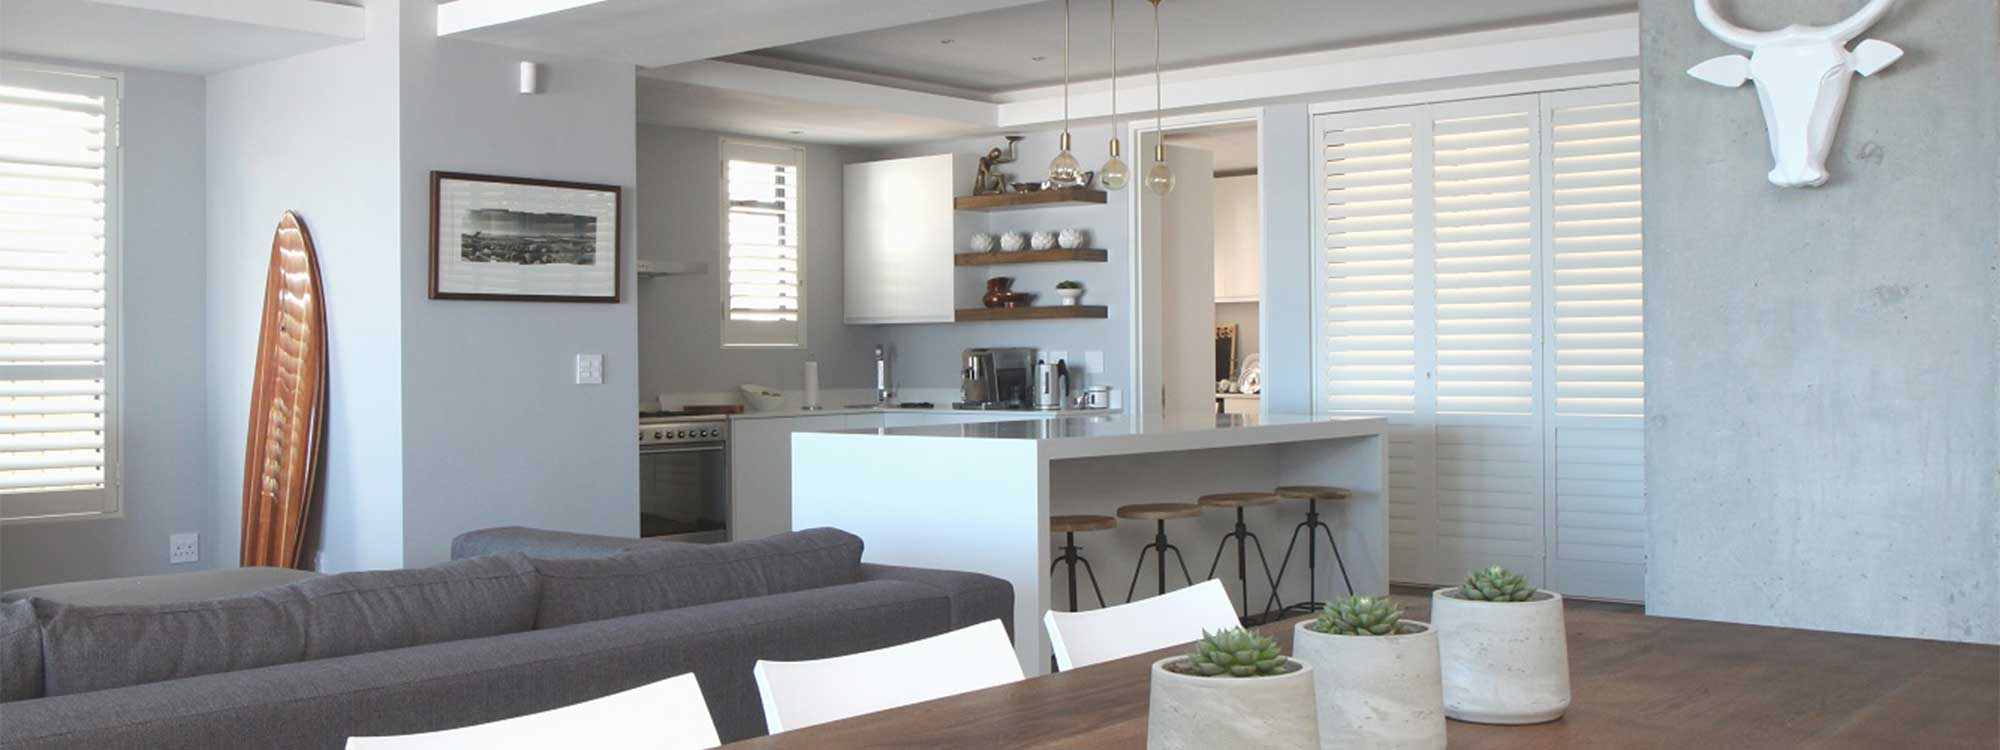 Security-shutters-living-area-dining